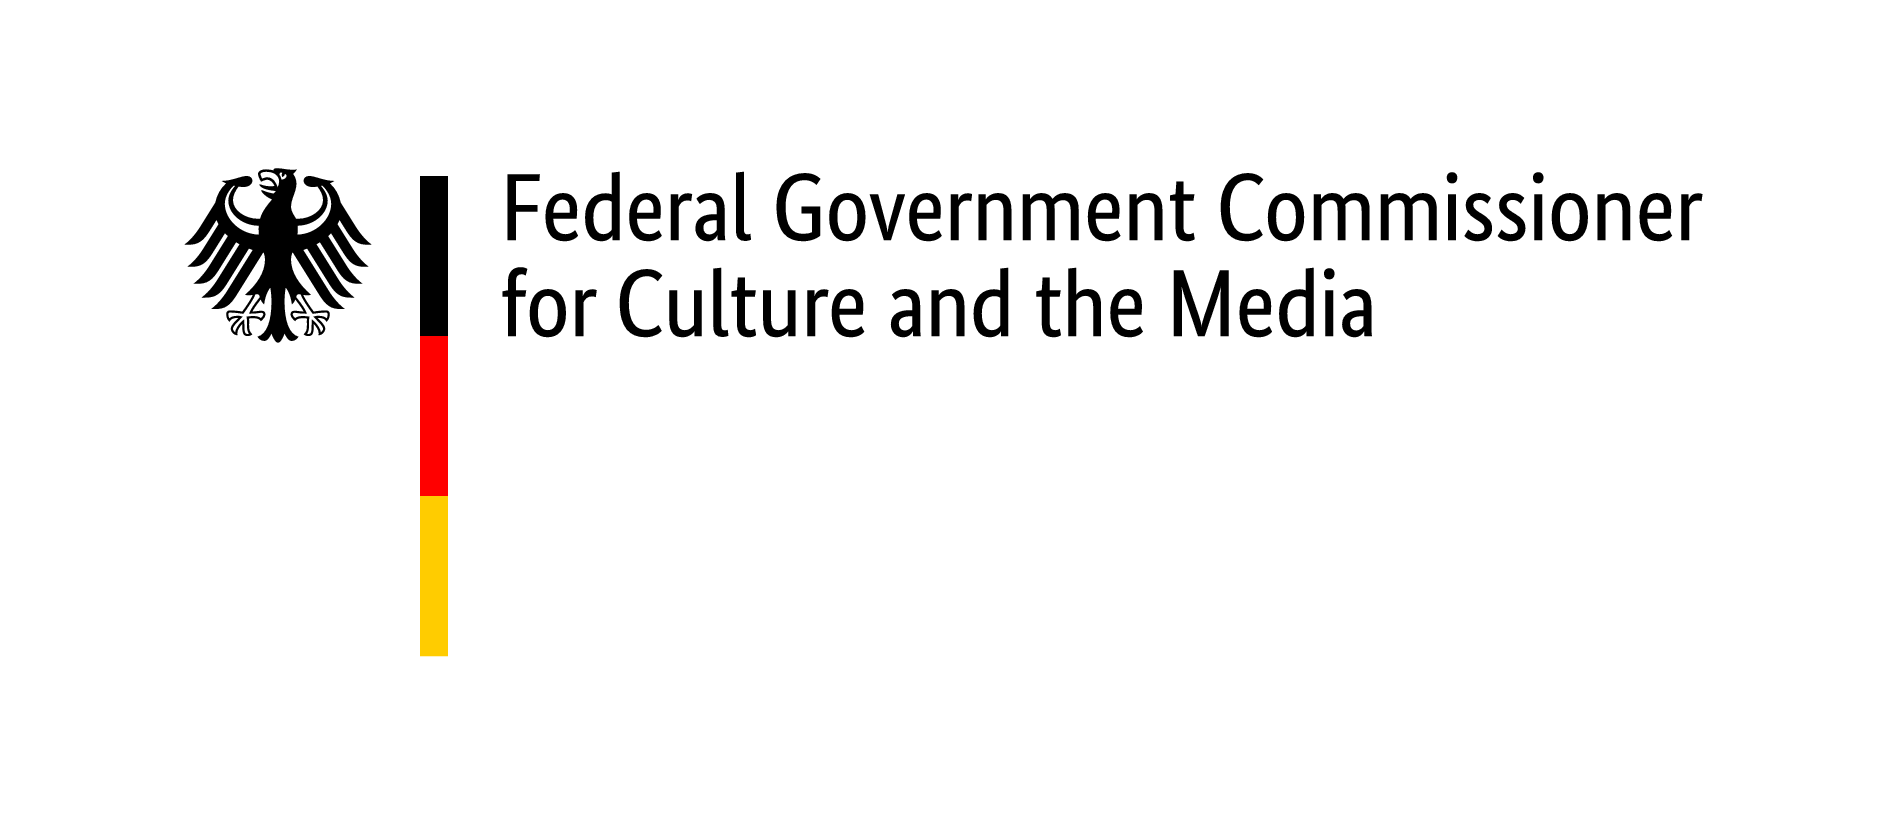 Federal Government Commissioner for Culture and the Media